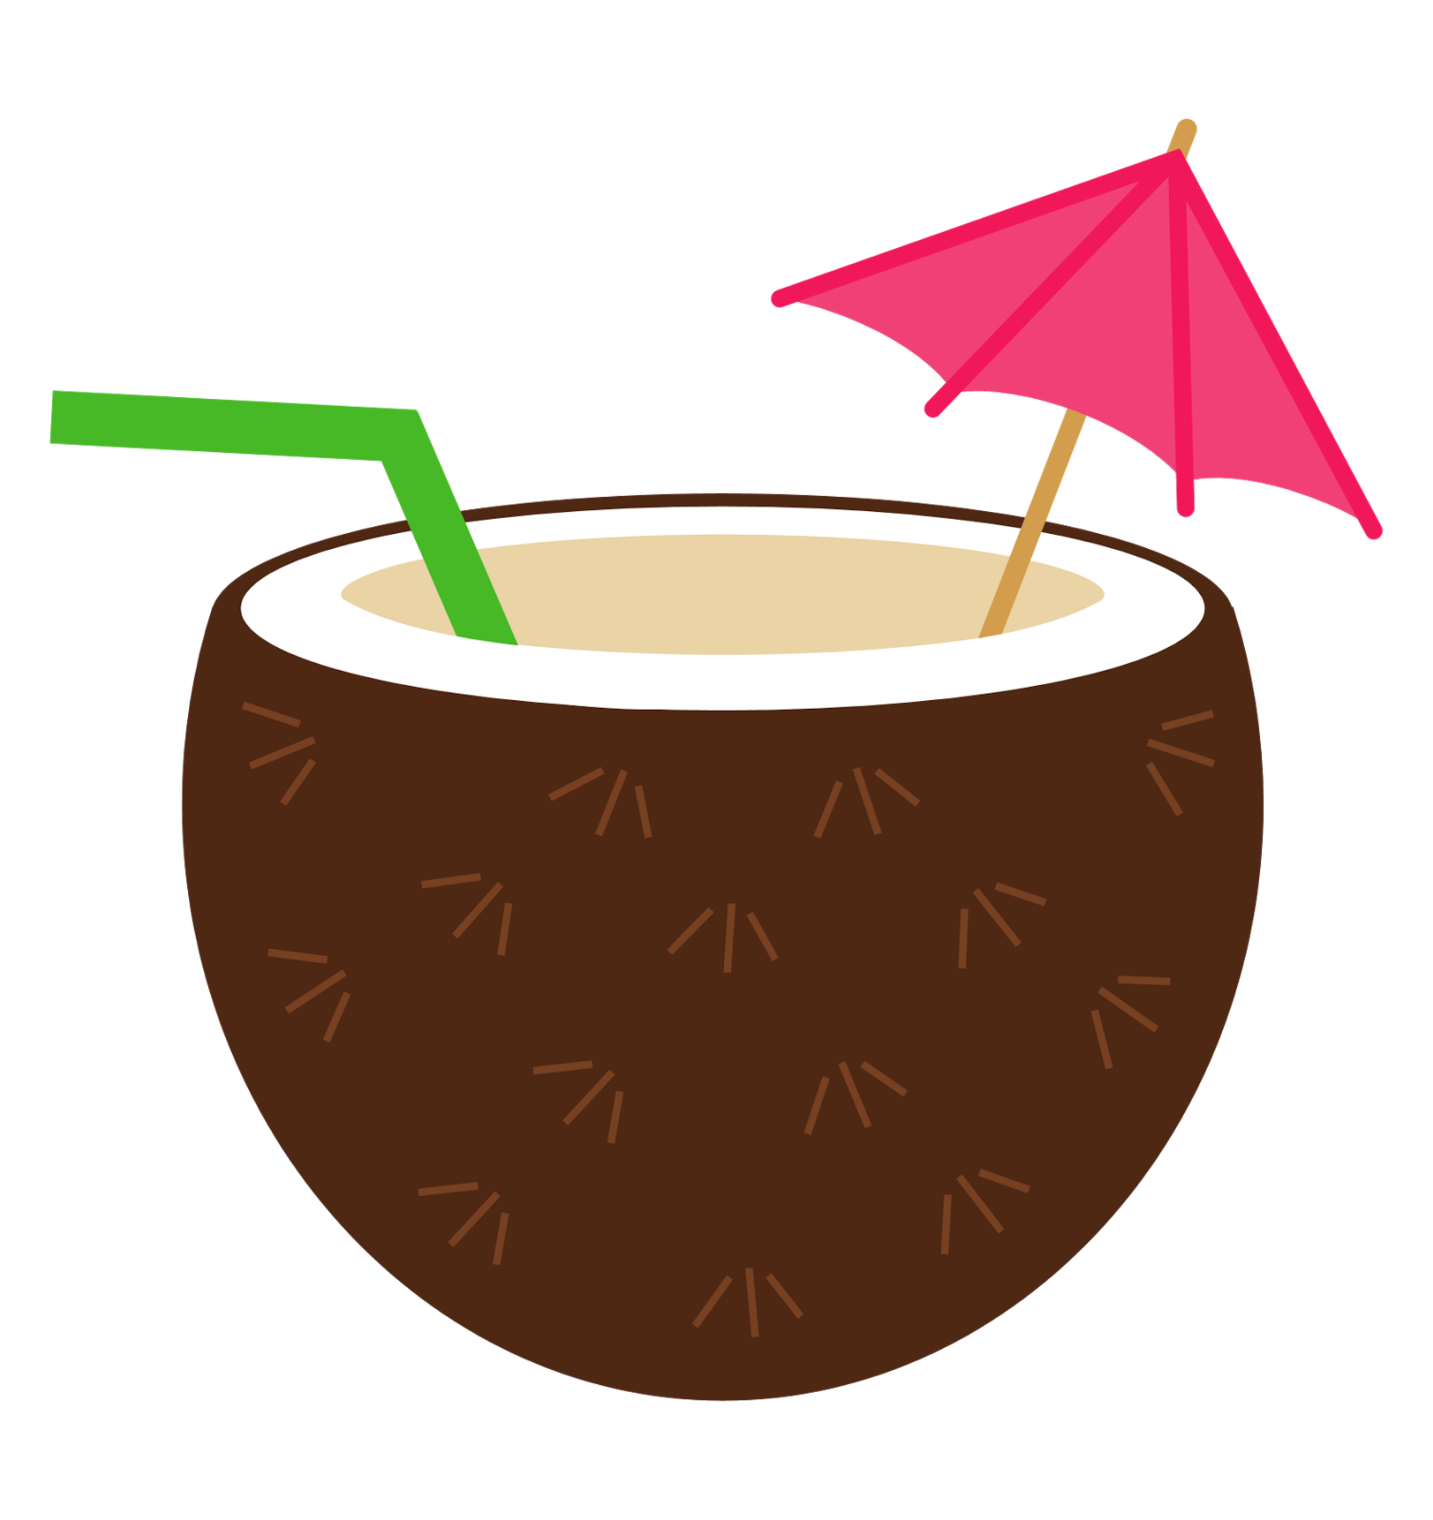 drinks clipart coconut